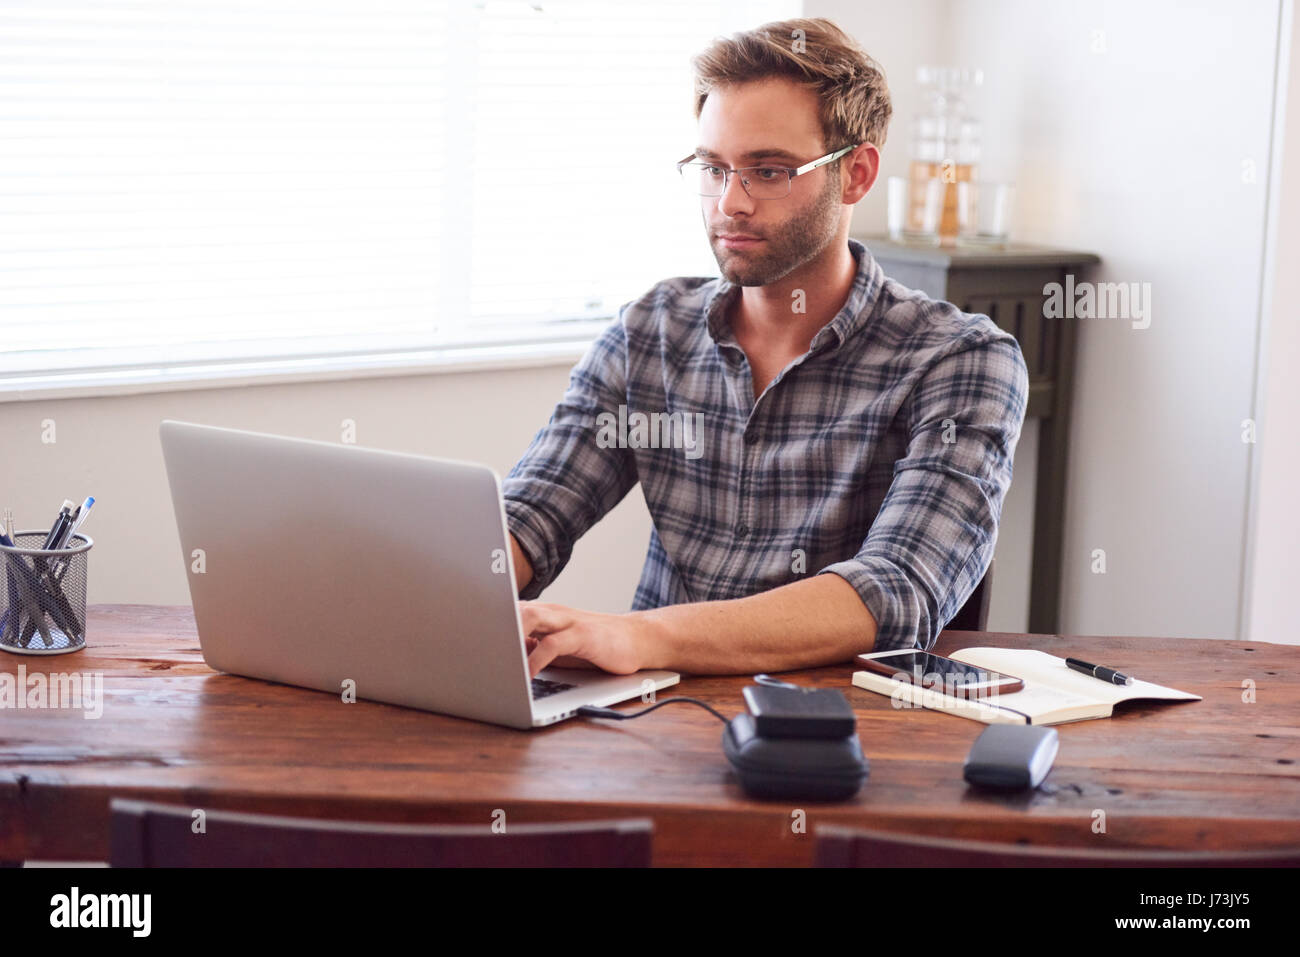 Modern man typing on a laptop while seated at desk Stock Photo